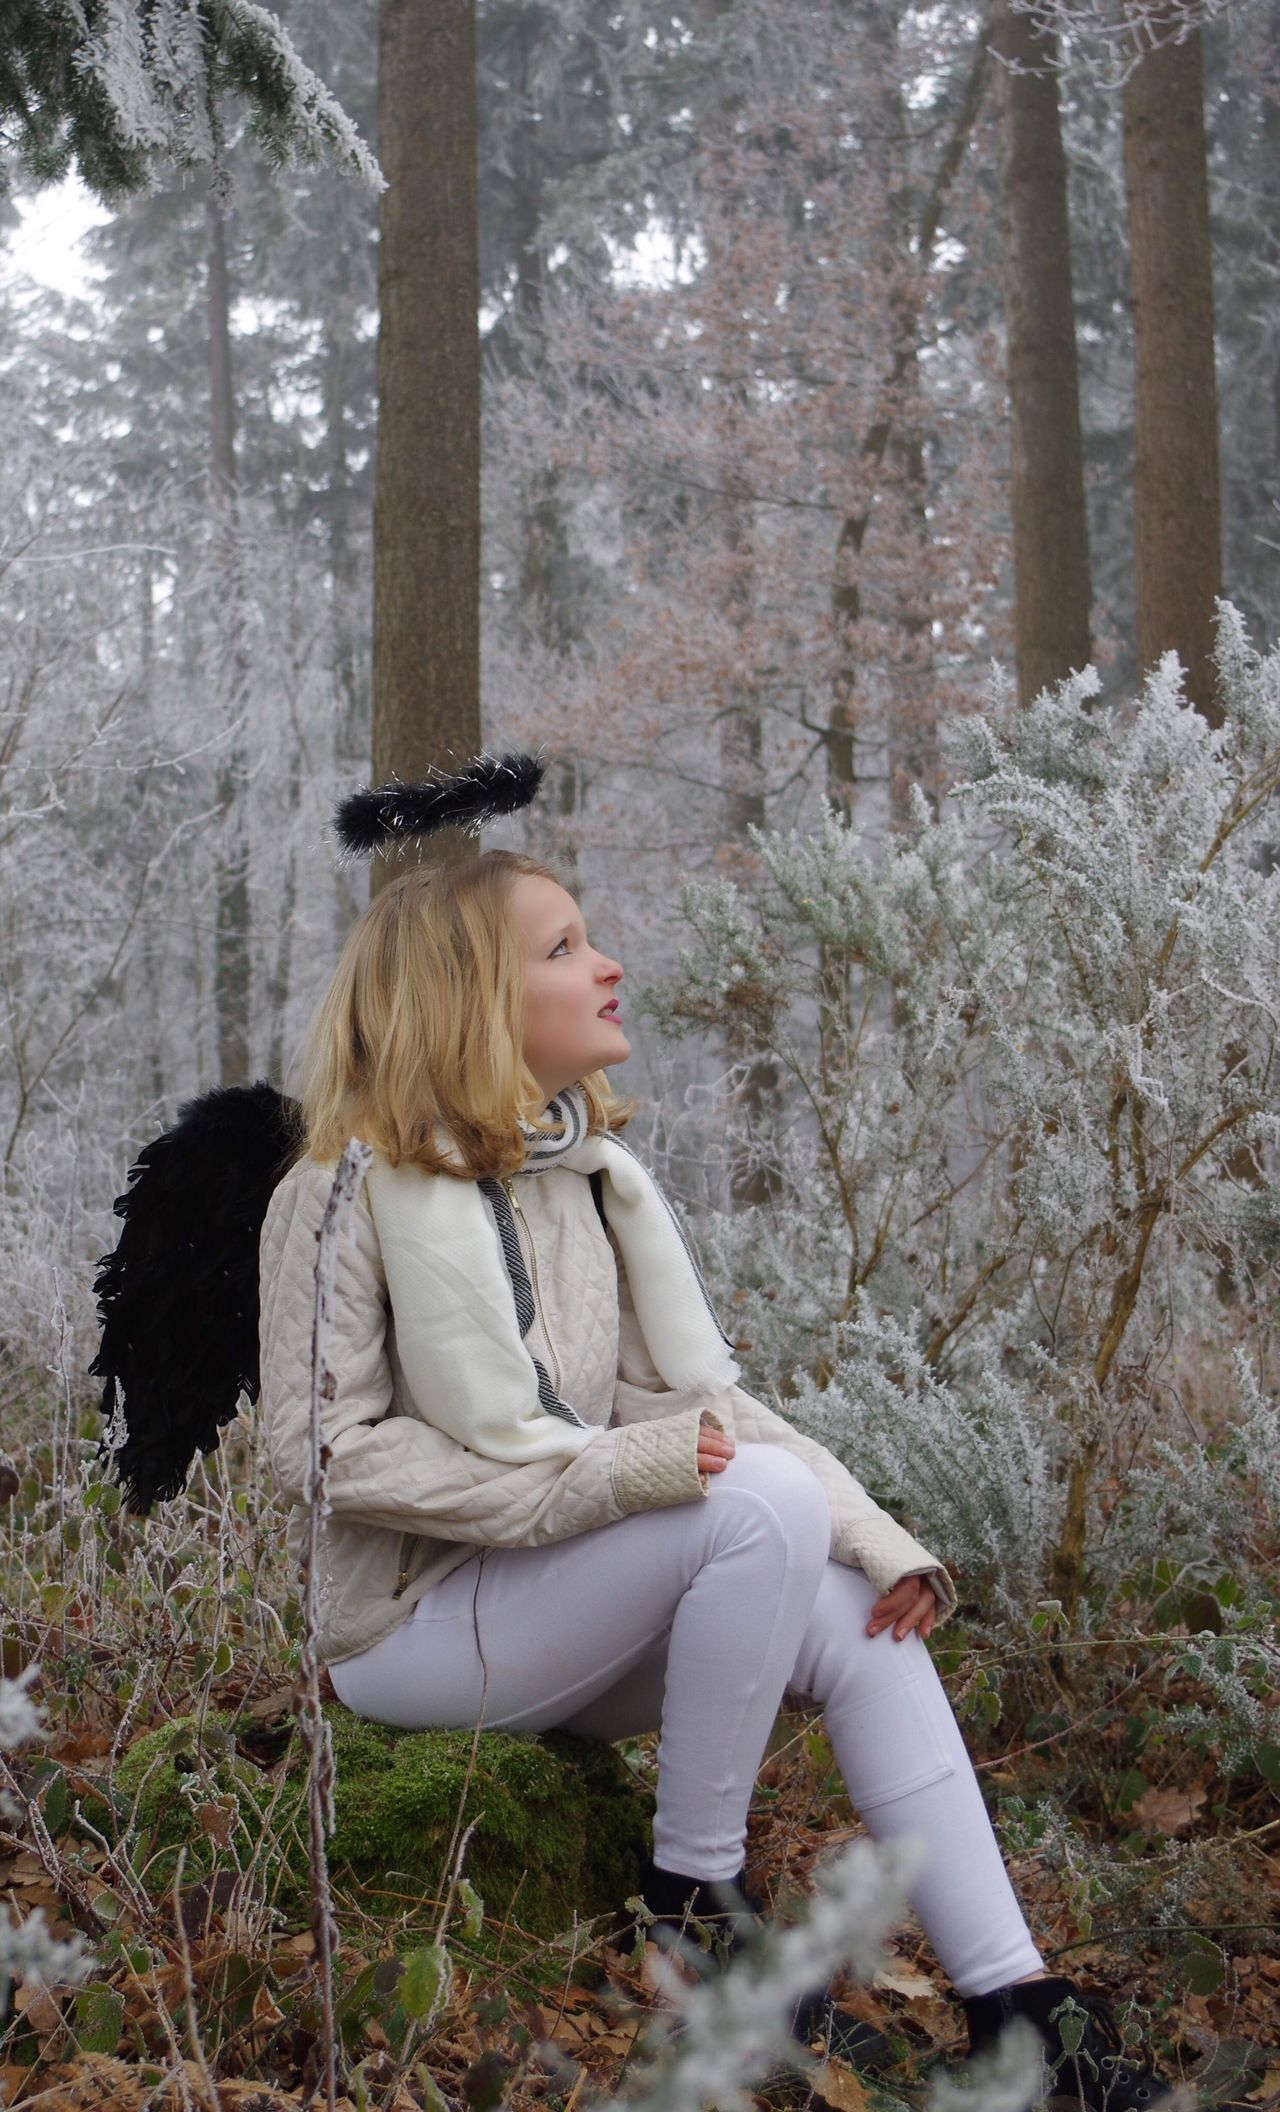 Série 1/6 Angel Shooting Frozen Nature Tree Full Length Freshness Blond Hair Young Adult Happiness Tree Trunk Day One Woman Only Outdoors